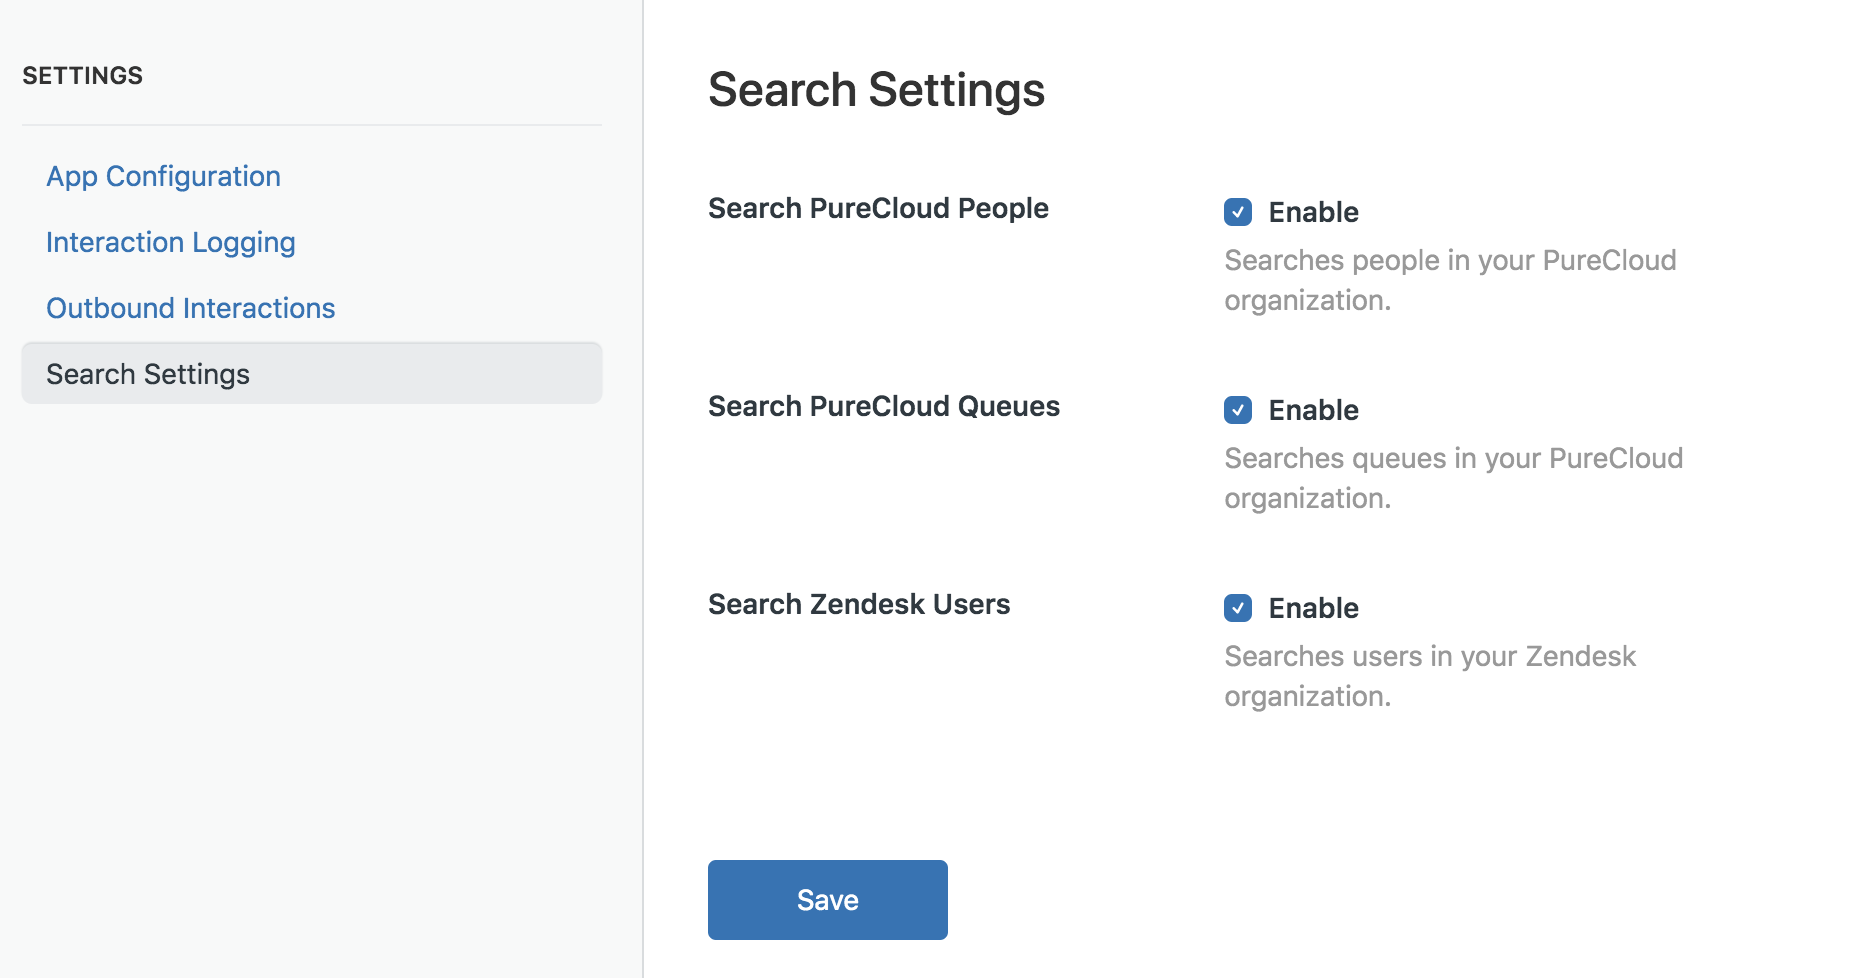 Search Settings in PureCloud for Zendesk